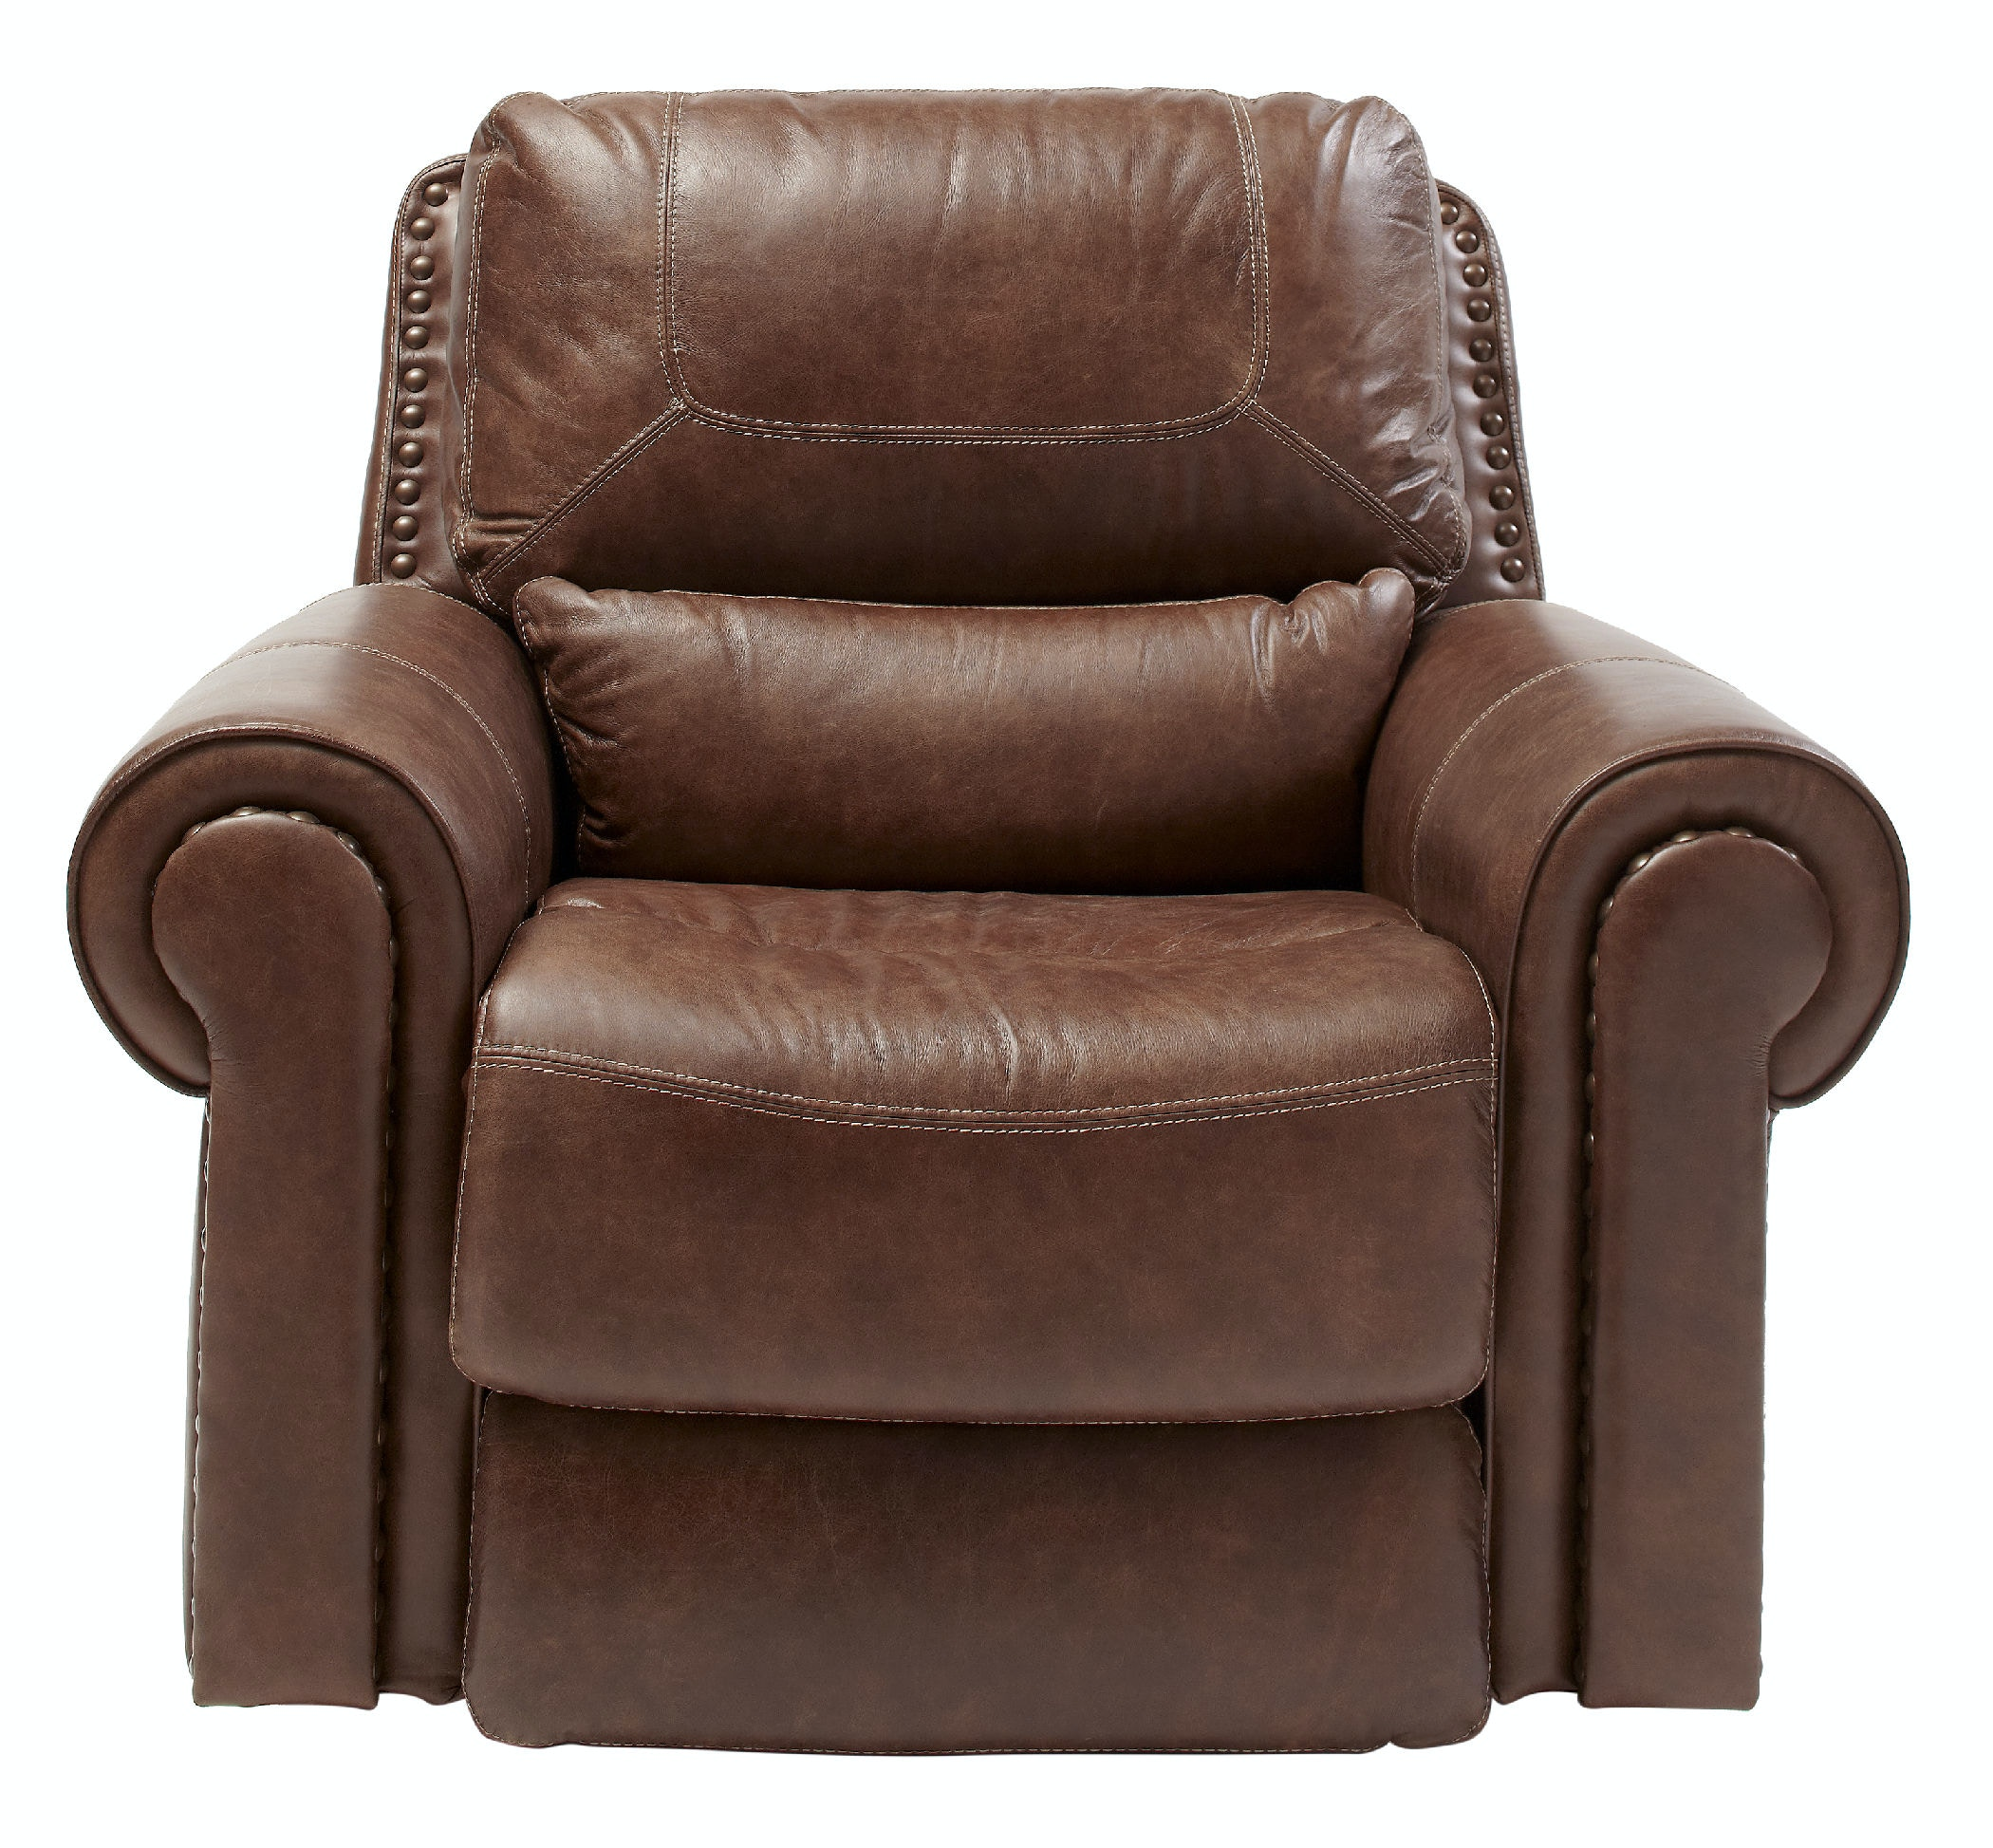 st charles leather power recliner st439515 - Power Recliner